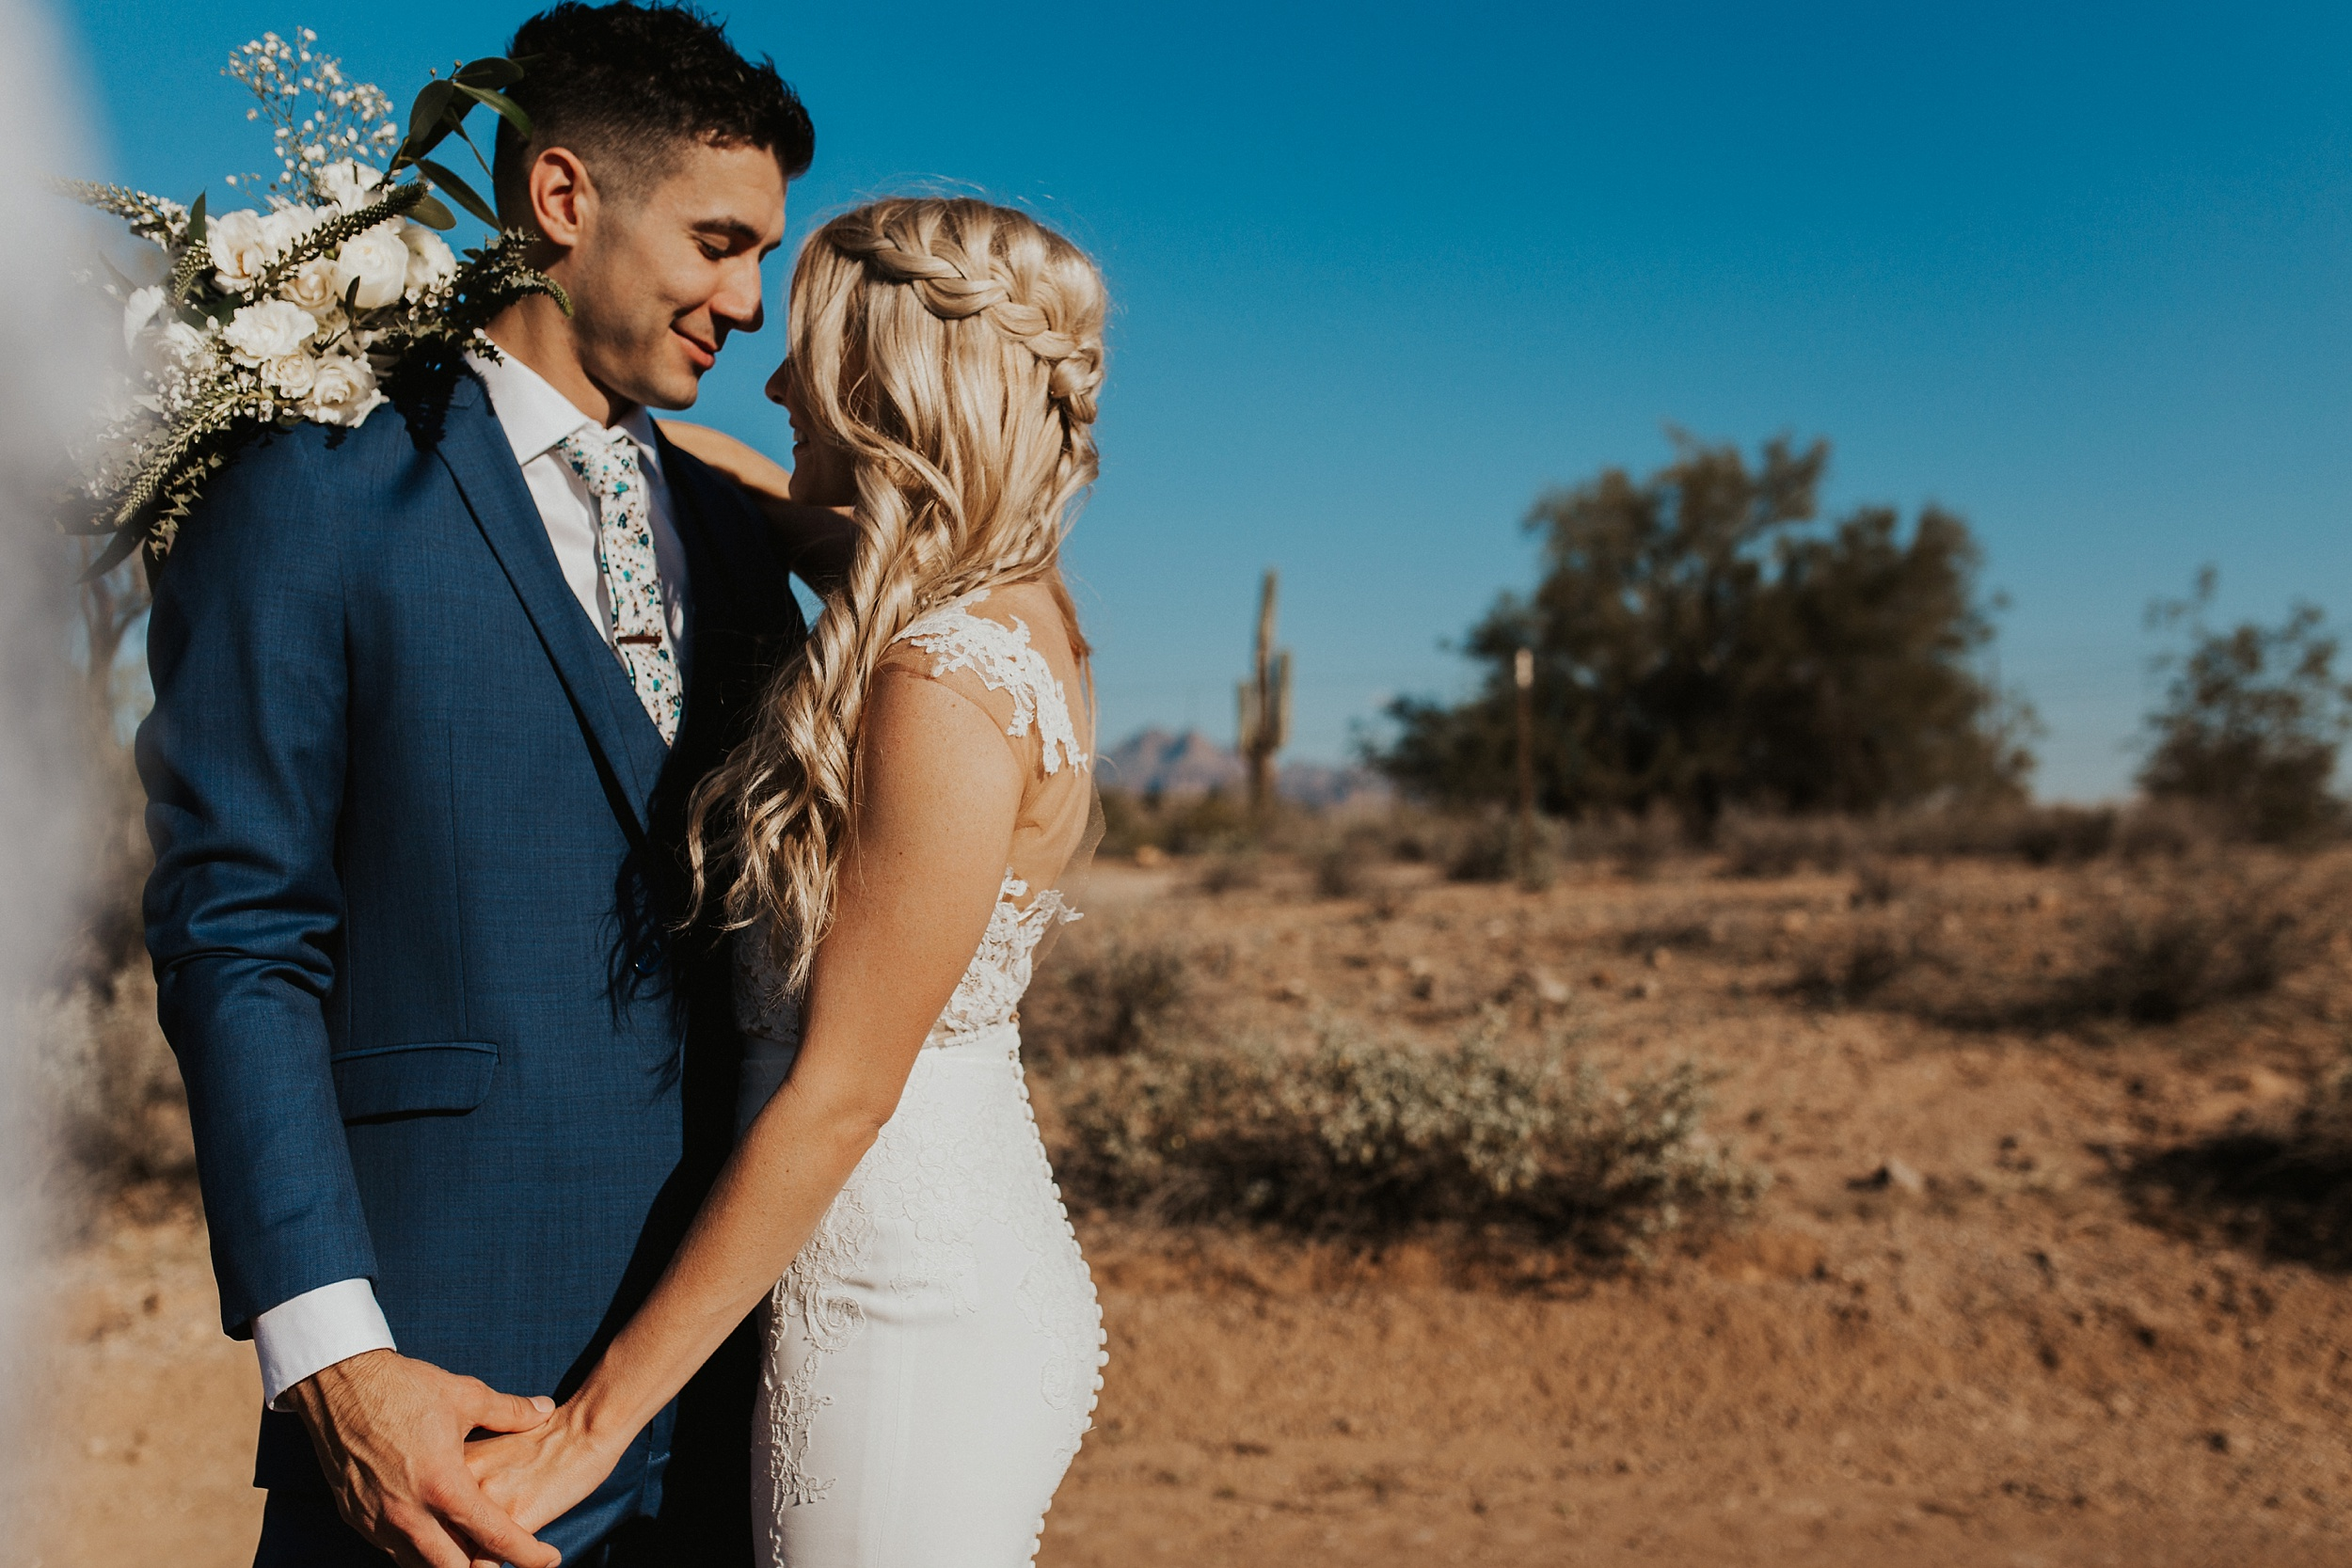 Meg+Bubba_Wedding_Bride+Groom_Portraits_Arizona-40.jpg